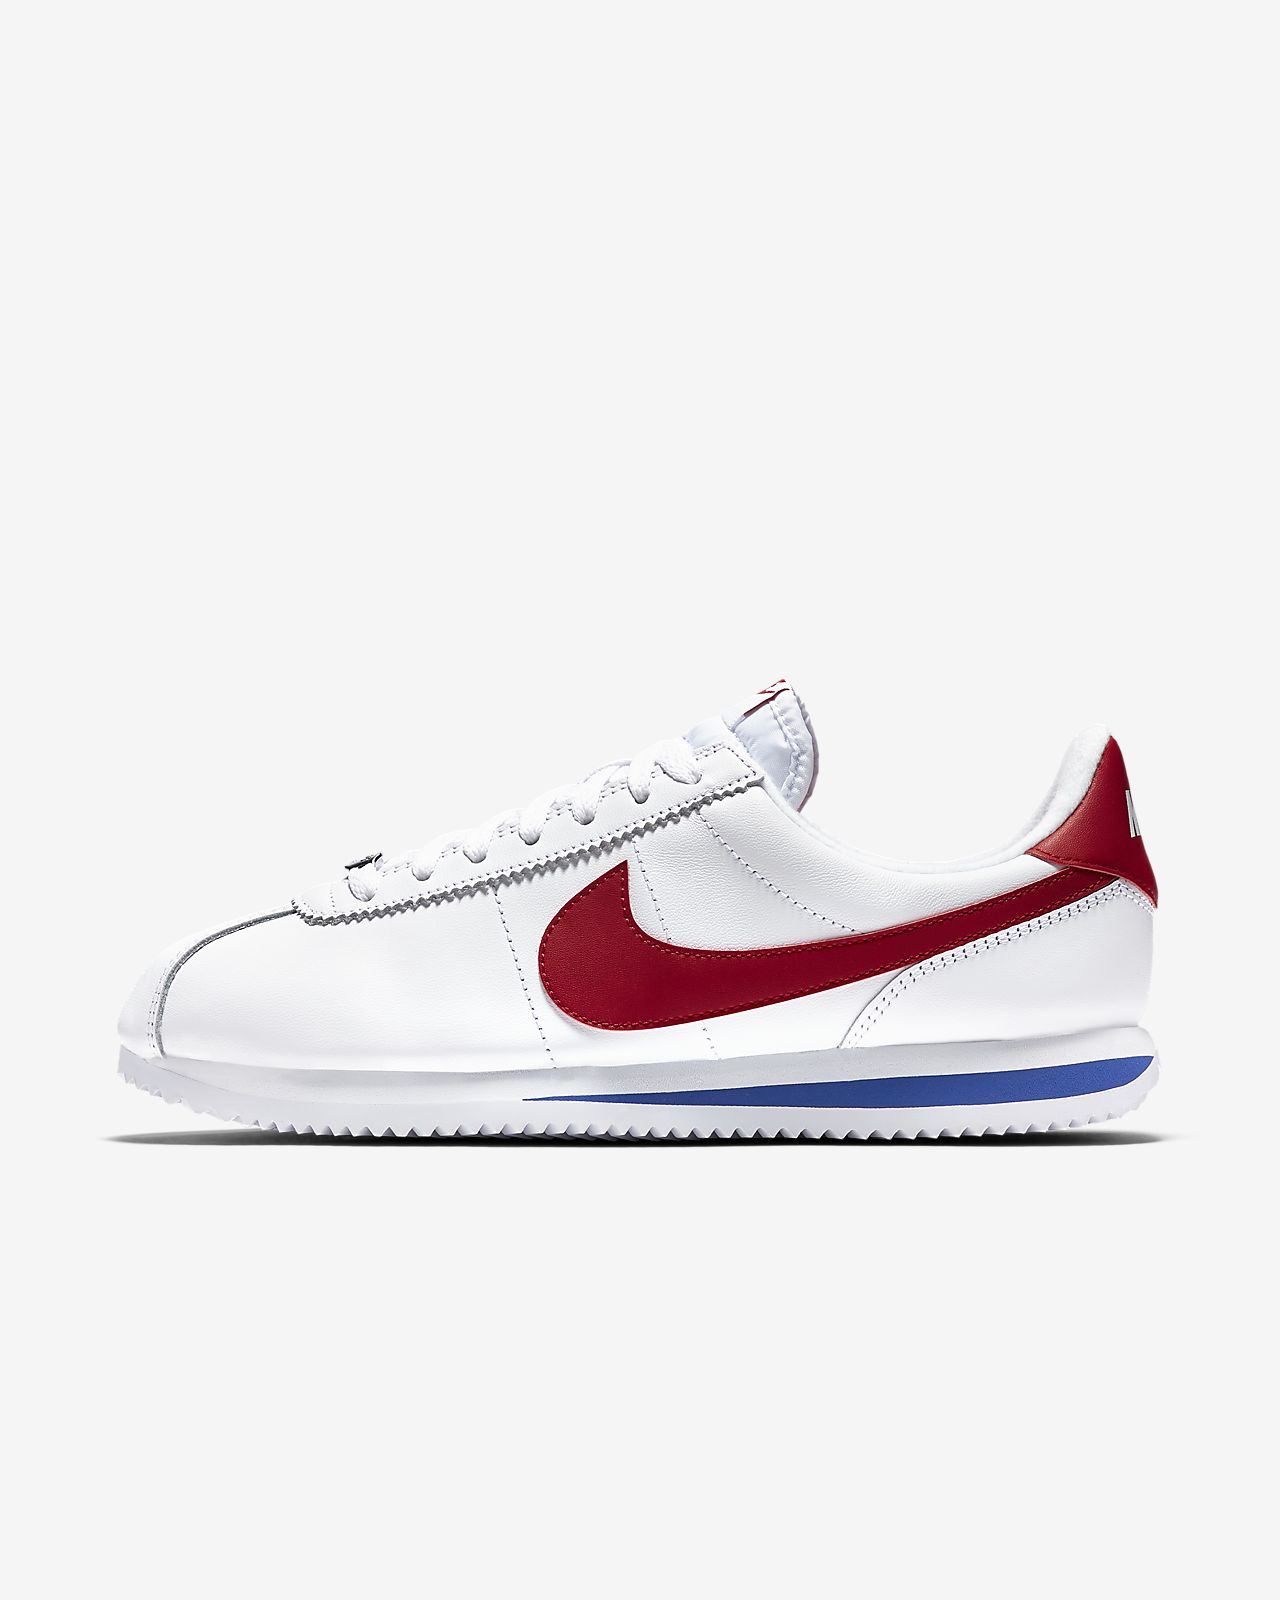 reputable site 37207 bdec0 ... Nike Cortez Basic Leather OG Mens Shoe